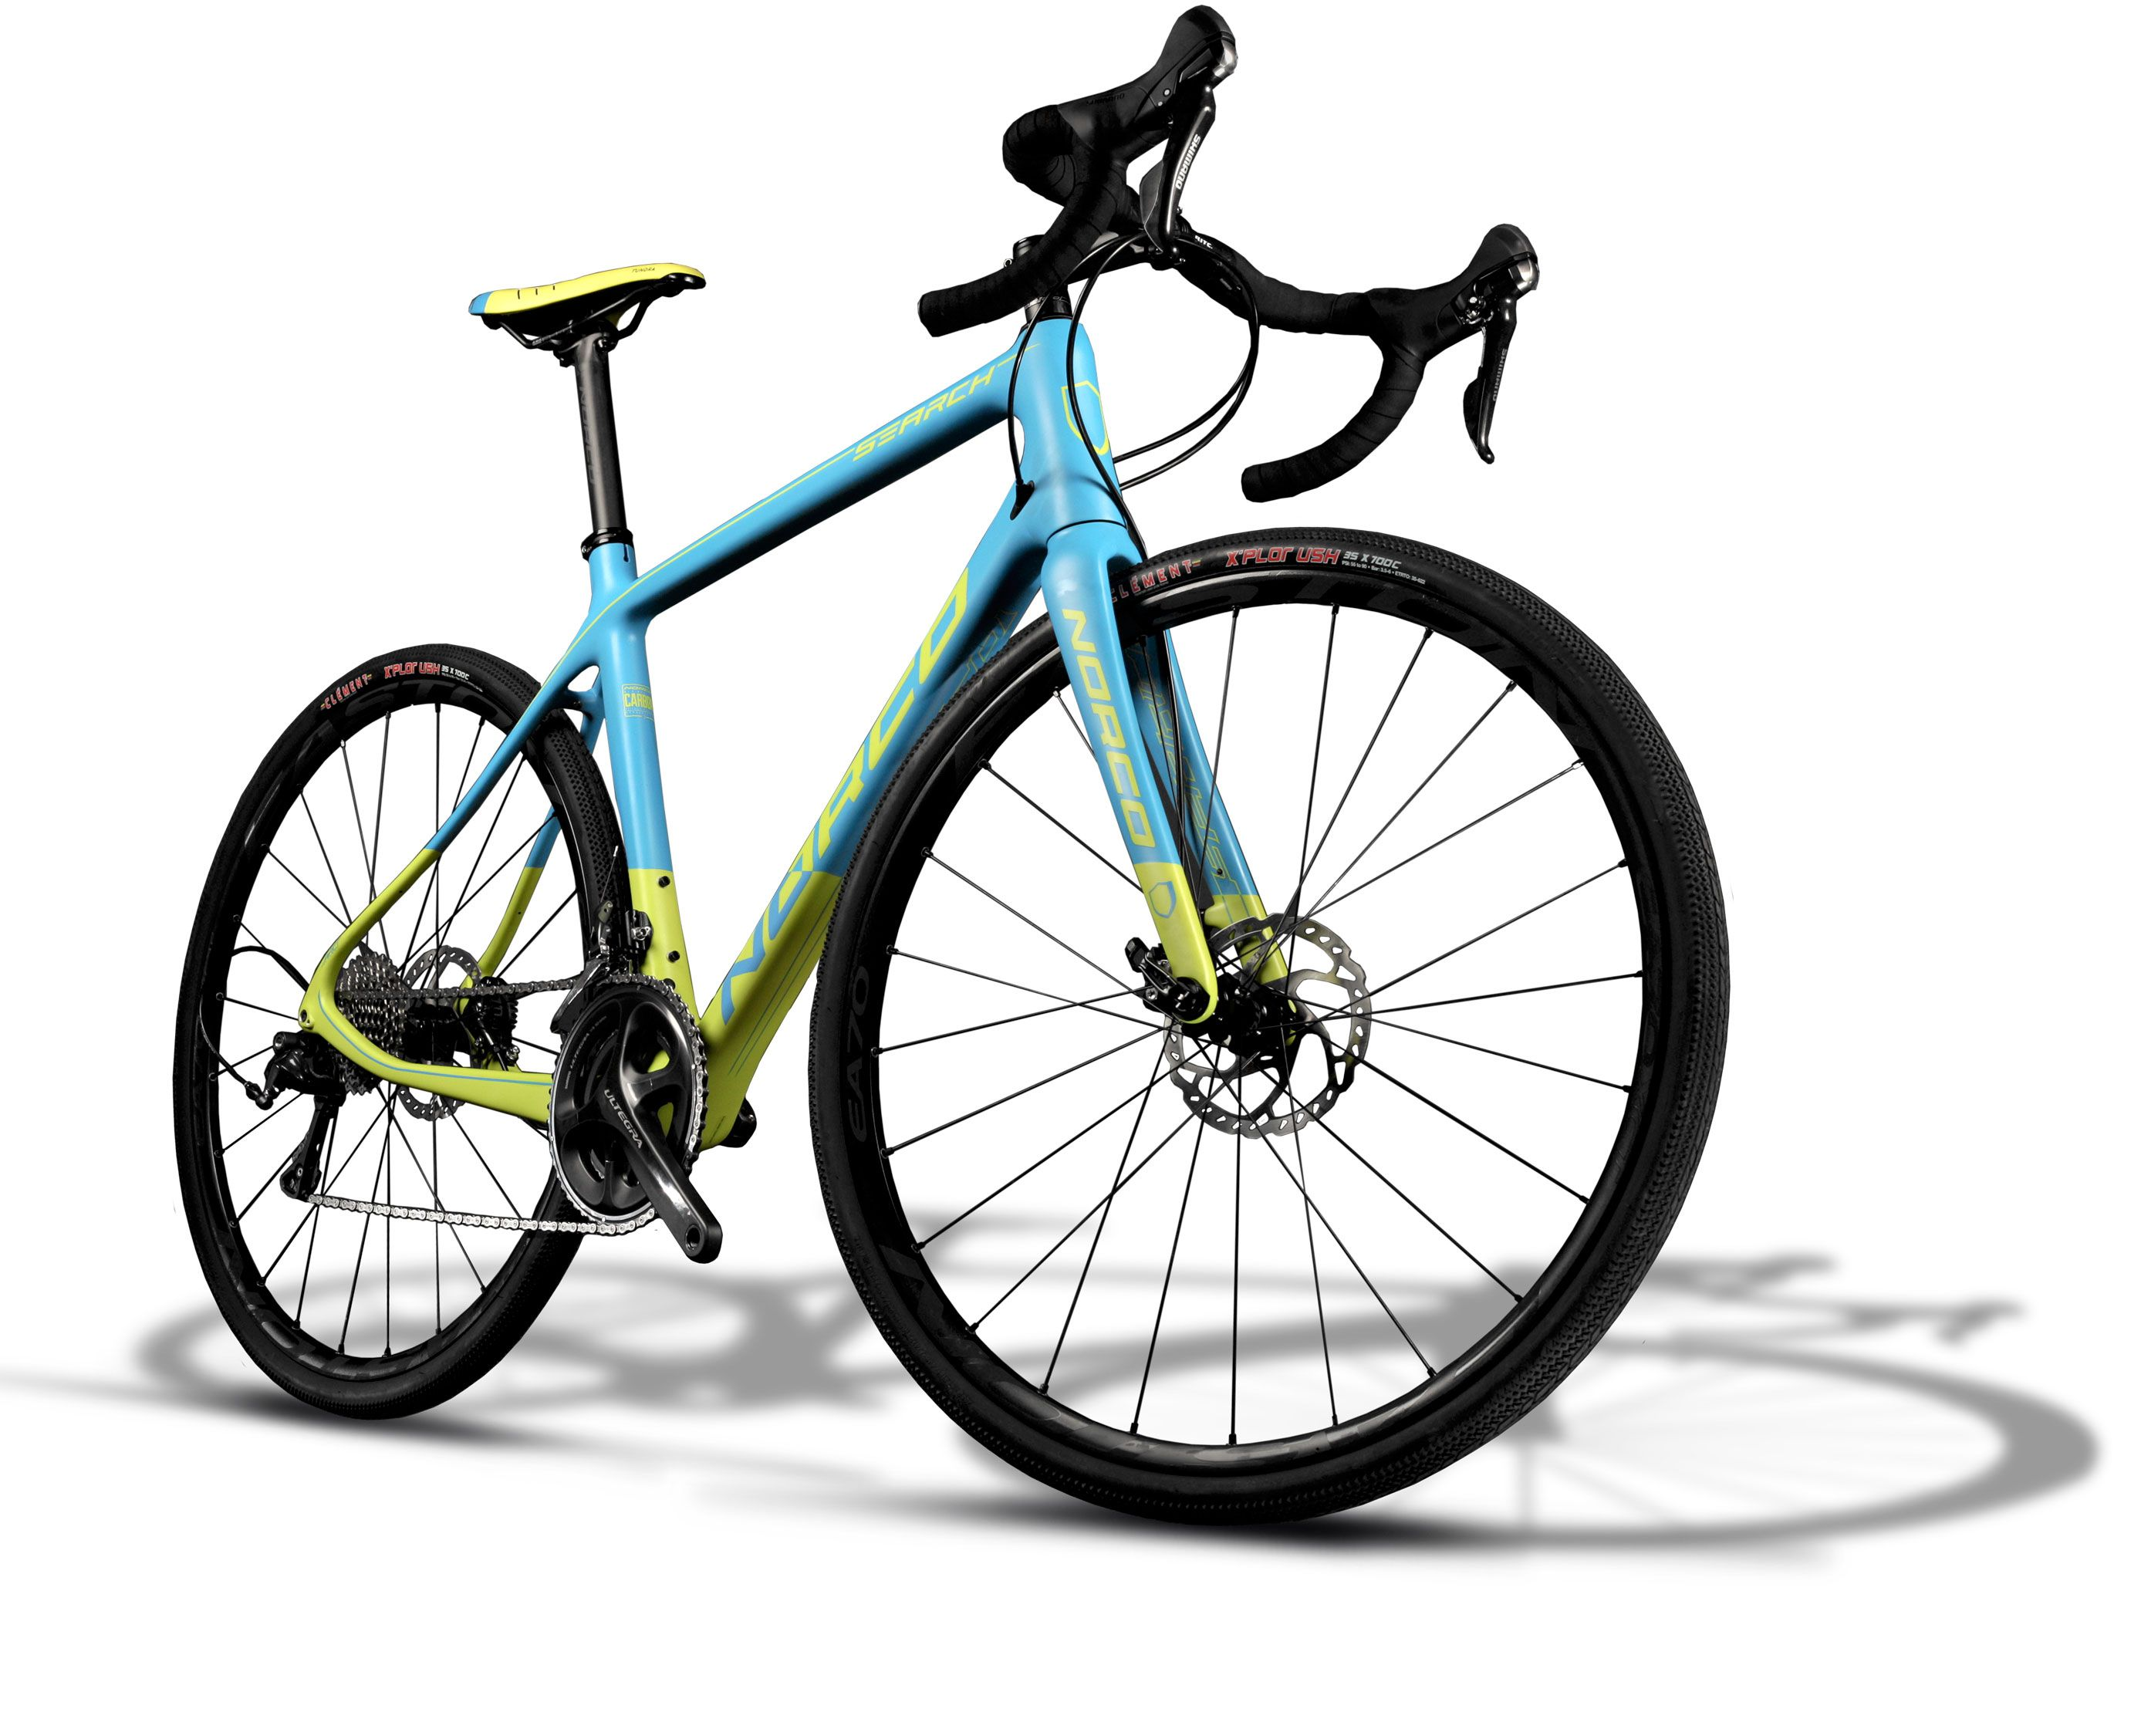 2015 Norco Search Xr Bicycles Pinterest Bicycling And Cycling